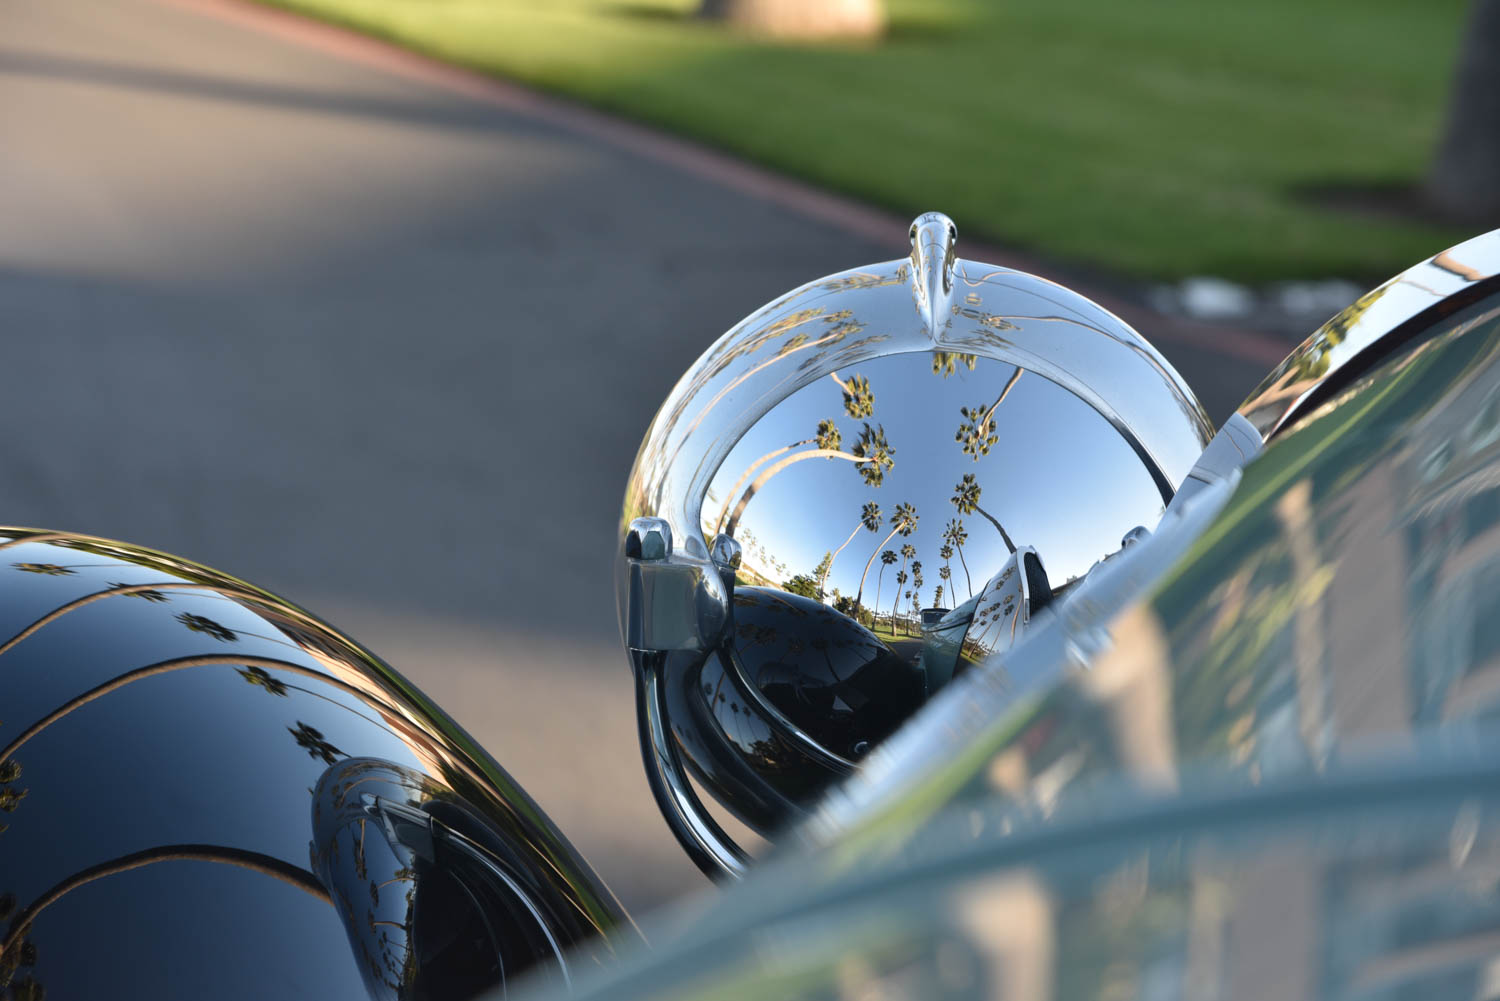 Bugatti headlight reflection